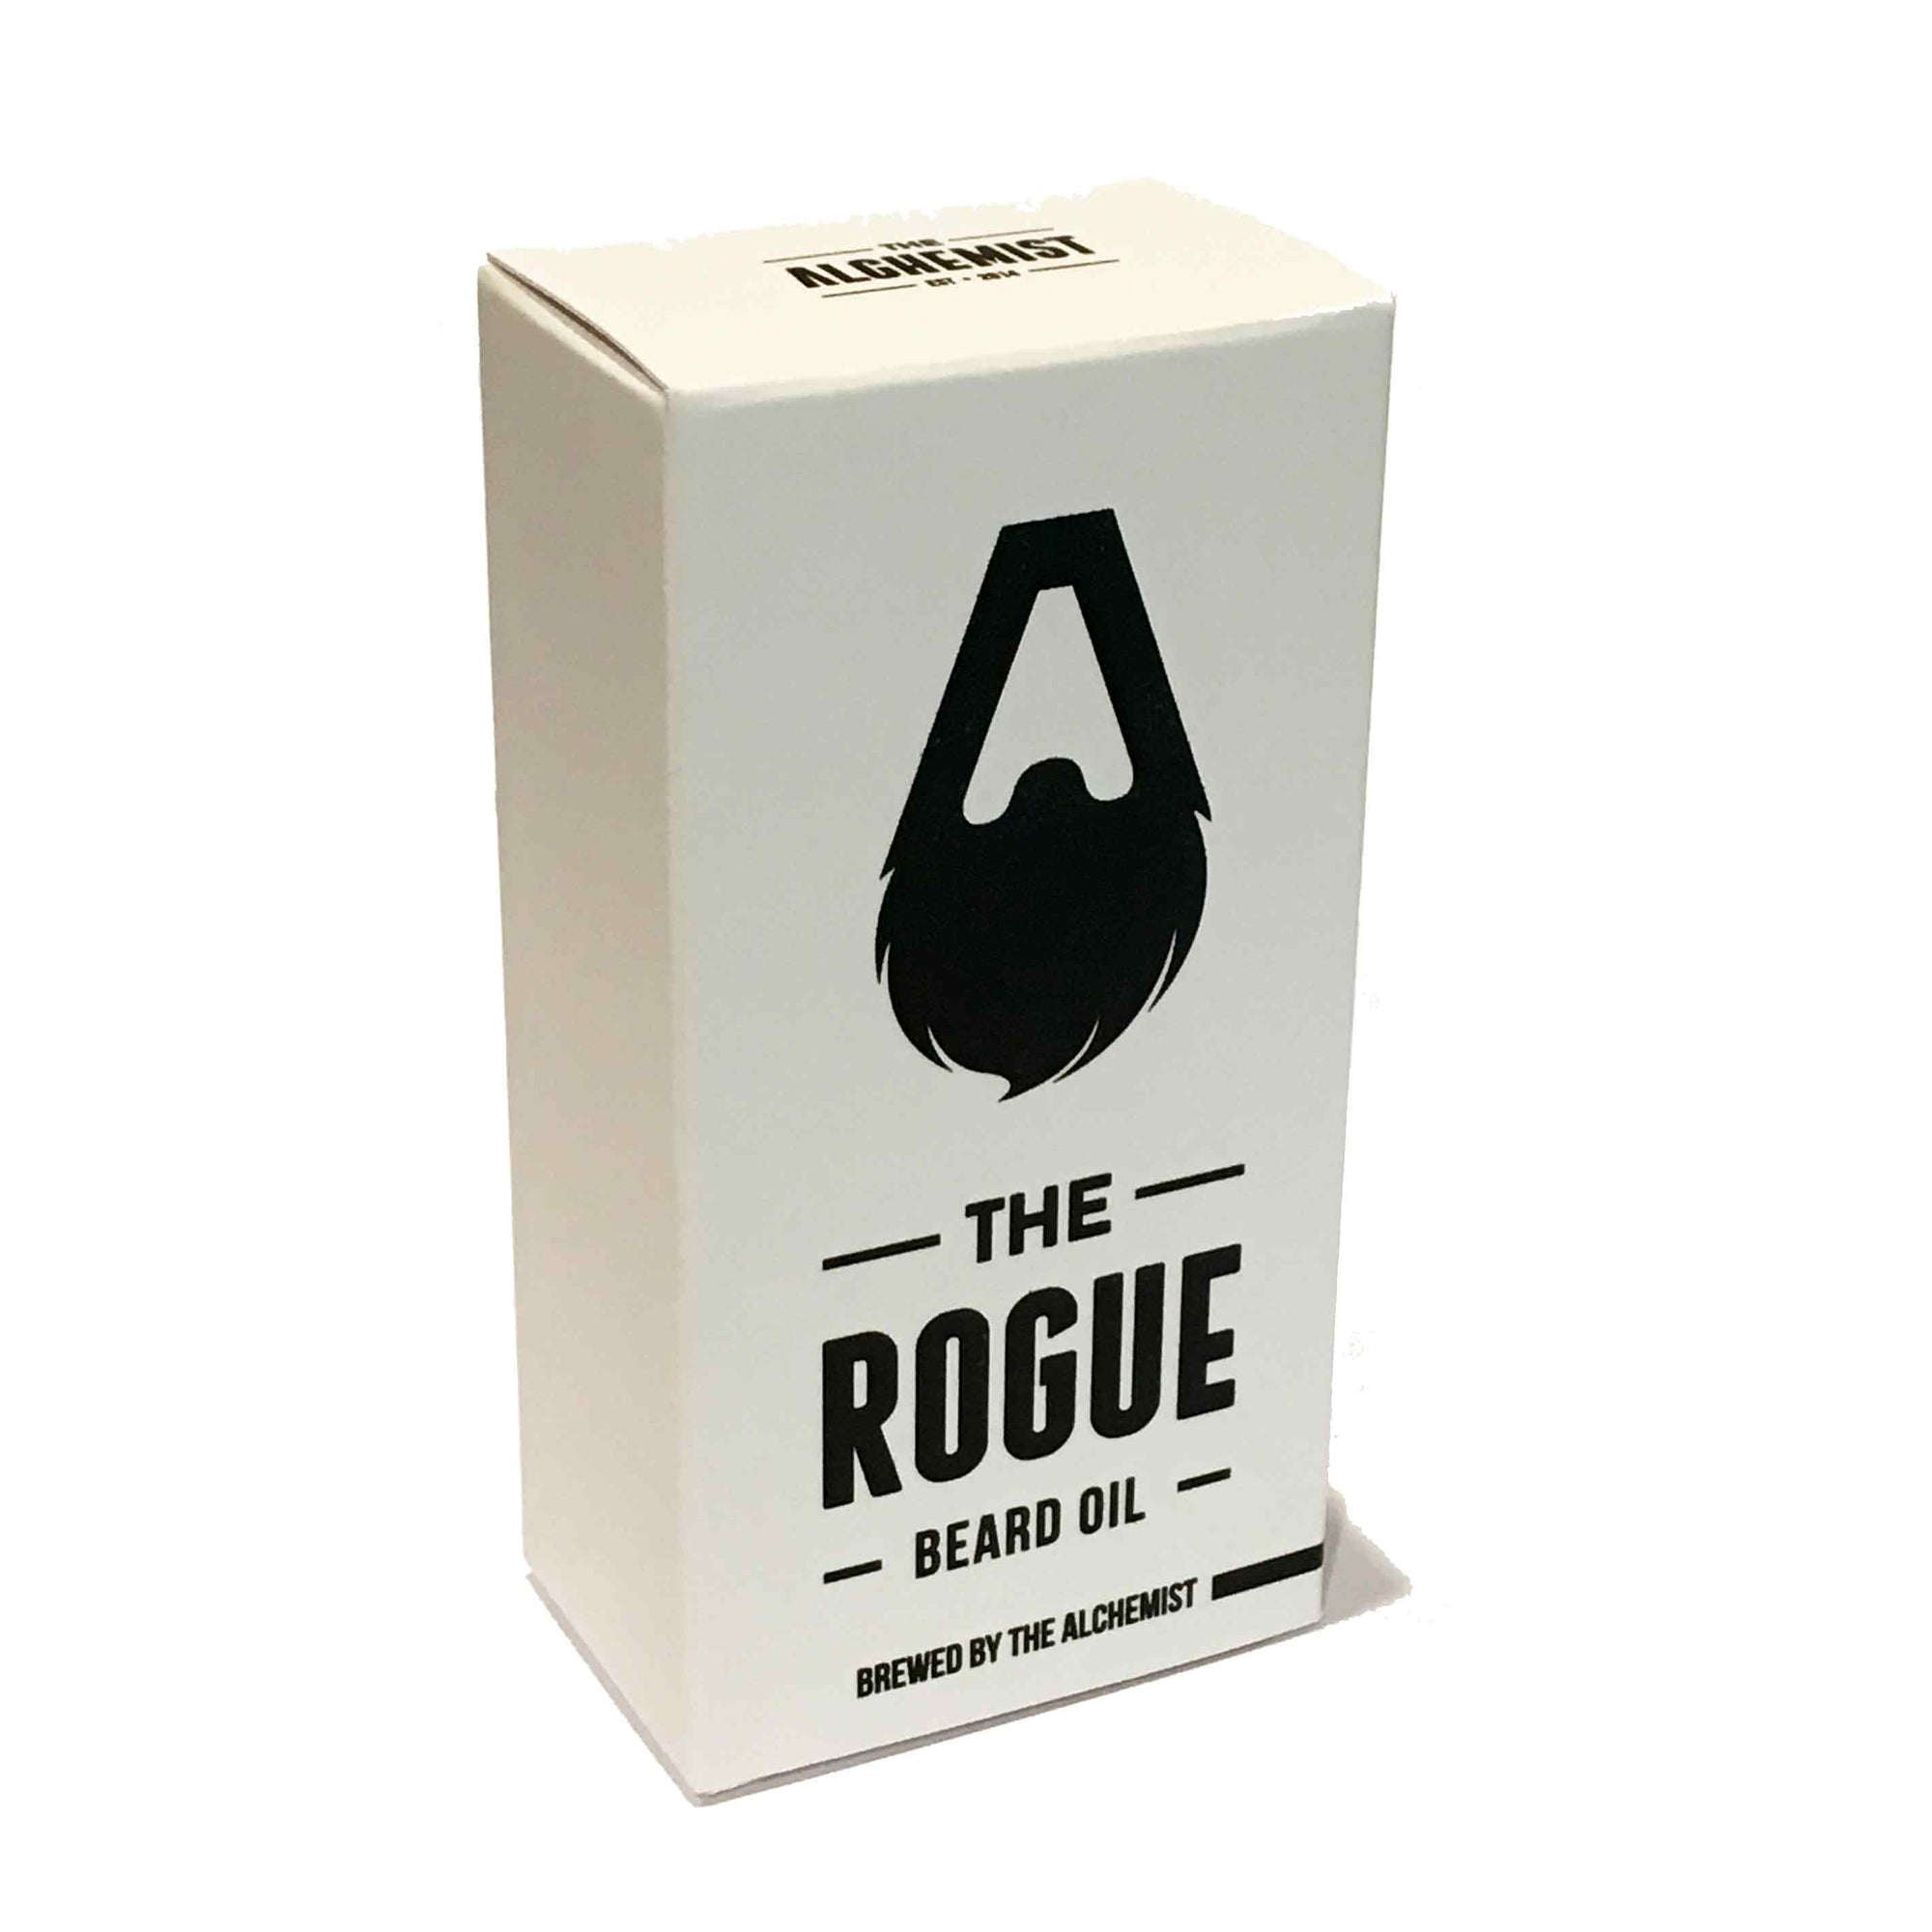 The Rogue all purpose oil by the alchemist_beard balm- bloke barbers dunedin - gifts for men